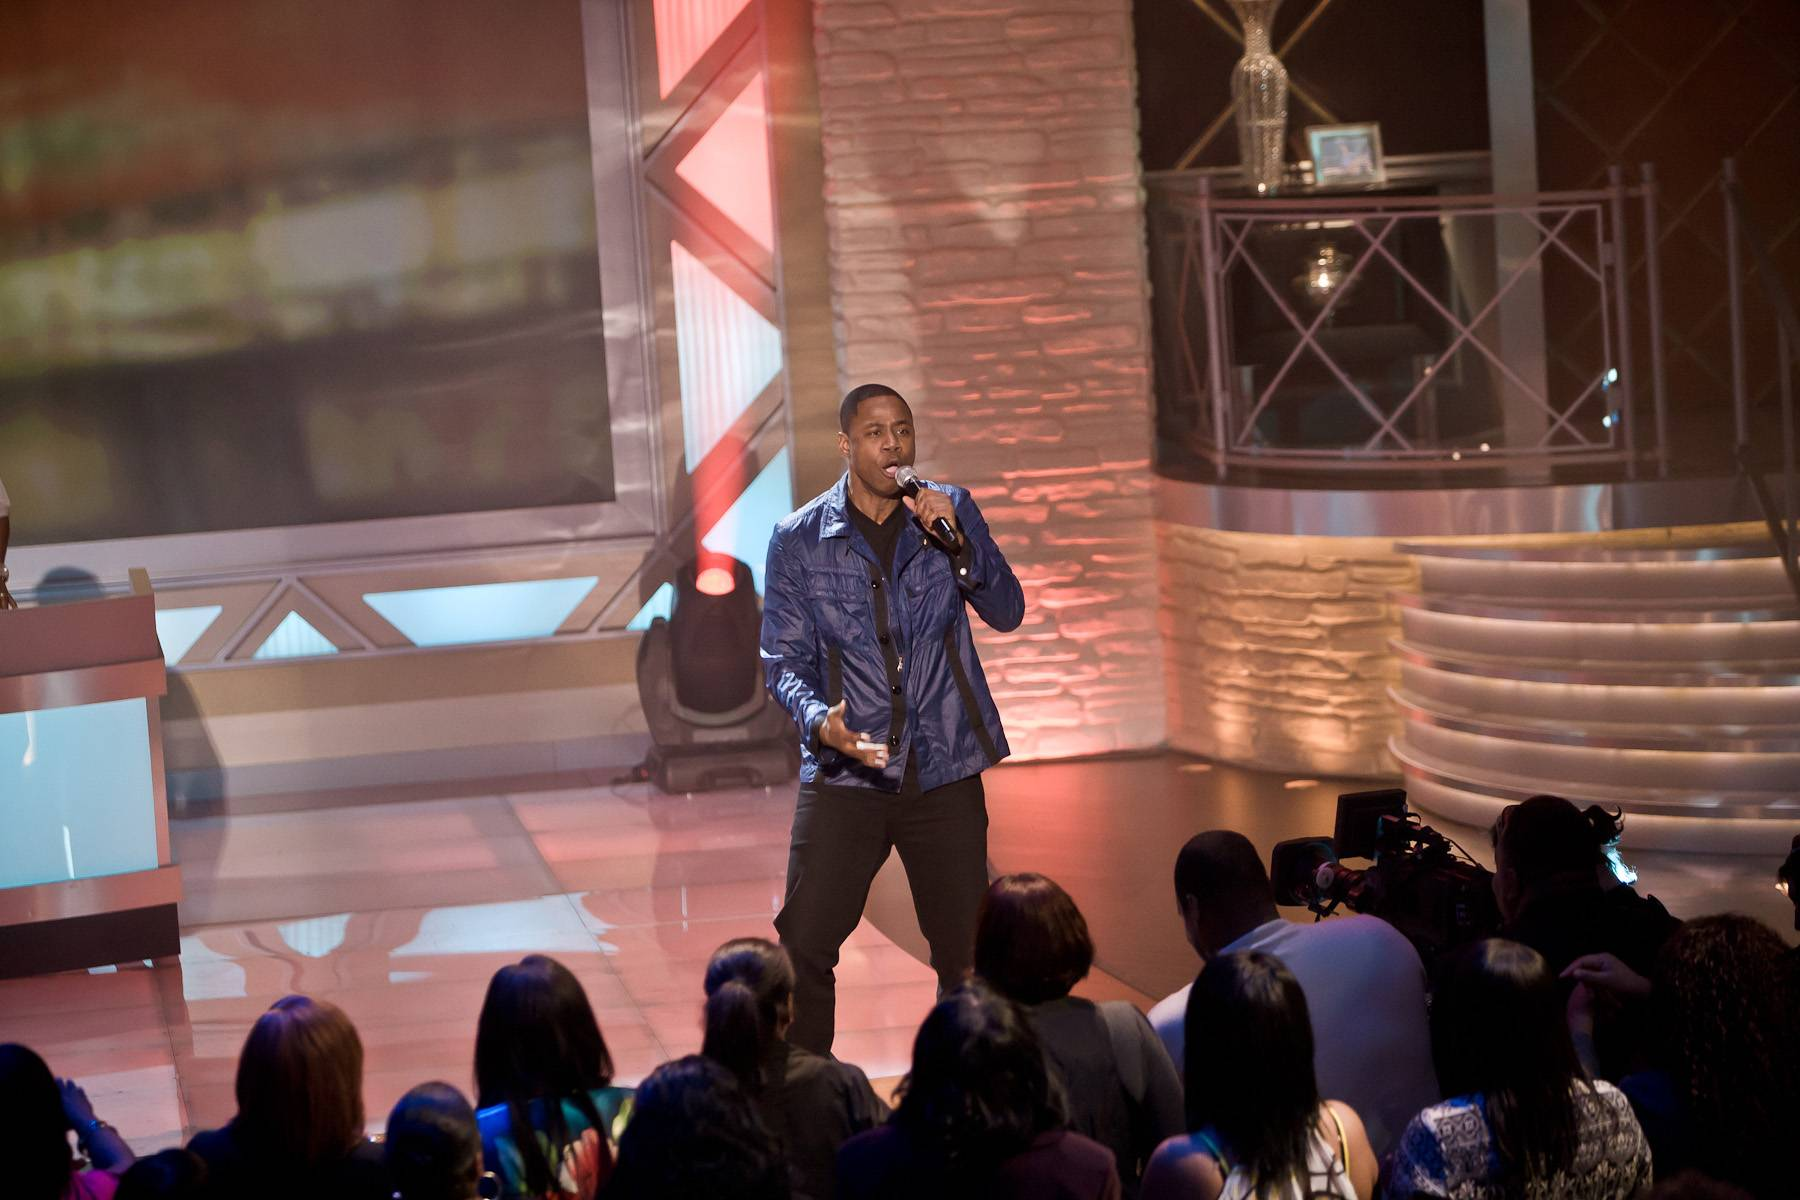 """Timeless - Fresh kept things funky by going into """"Freaks"""" for the audience. As the creidts rolled, he went into his solo routine of beatboxing until the end of the song.(Photo: Darnell Williams/BET)"""